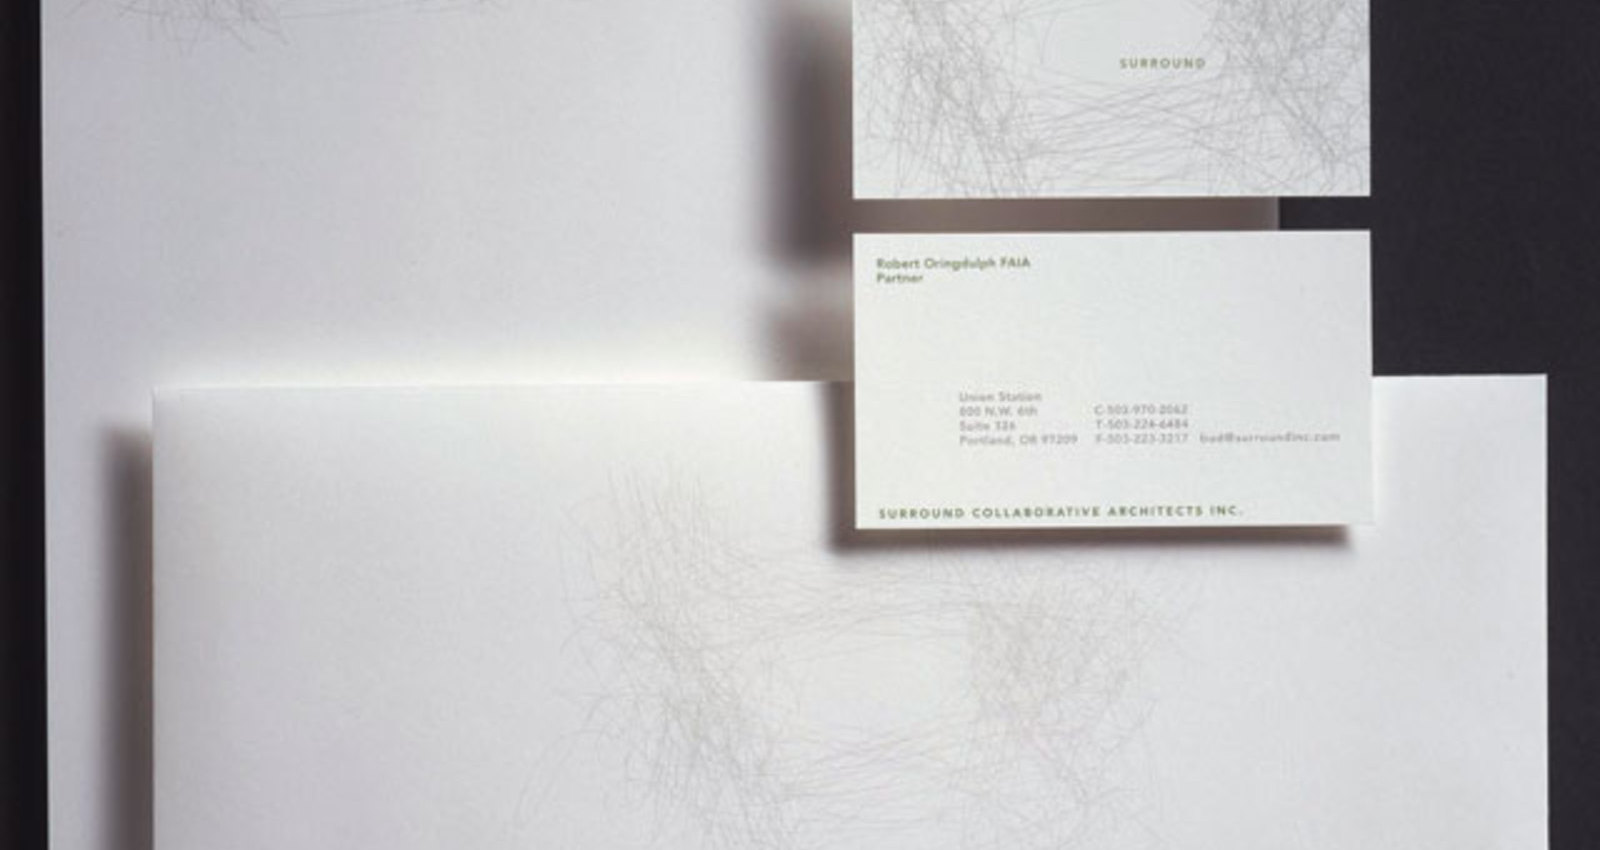 Surround Collaborative Architects Corporate Identity